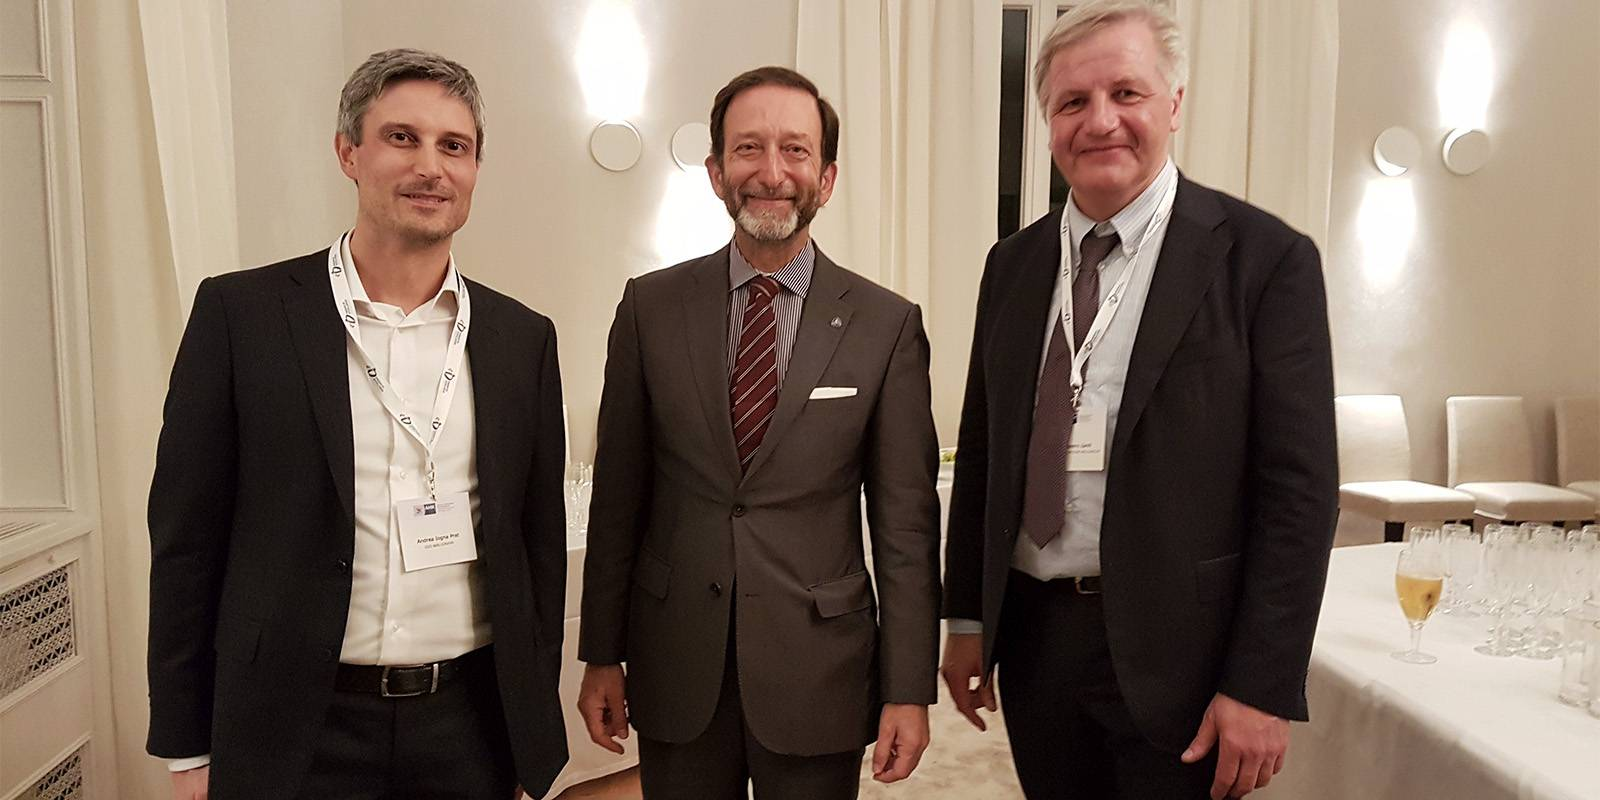 From left Andrea Iogna Prat, professor at Technical and Industrial Institute Malignani, Viktor Elbing, Germany's Ambassador to Italy and Giampietro Zamò, Work-Integrated Learning Officer, Danieli Academy